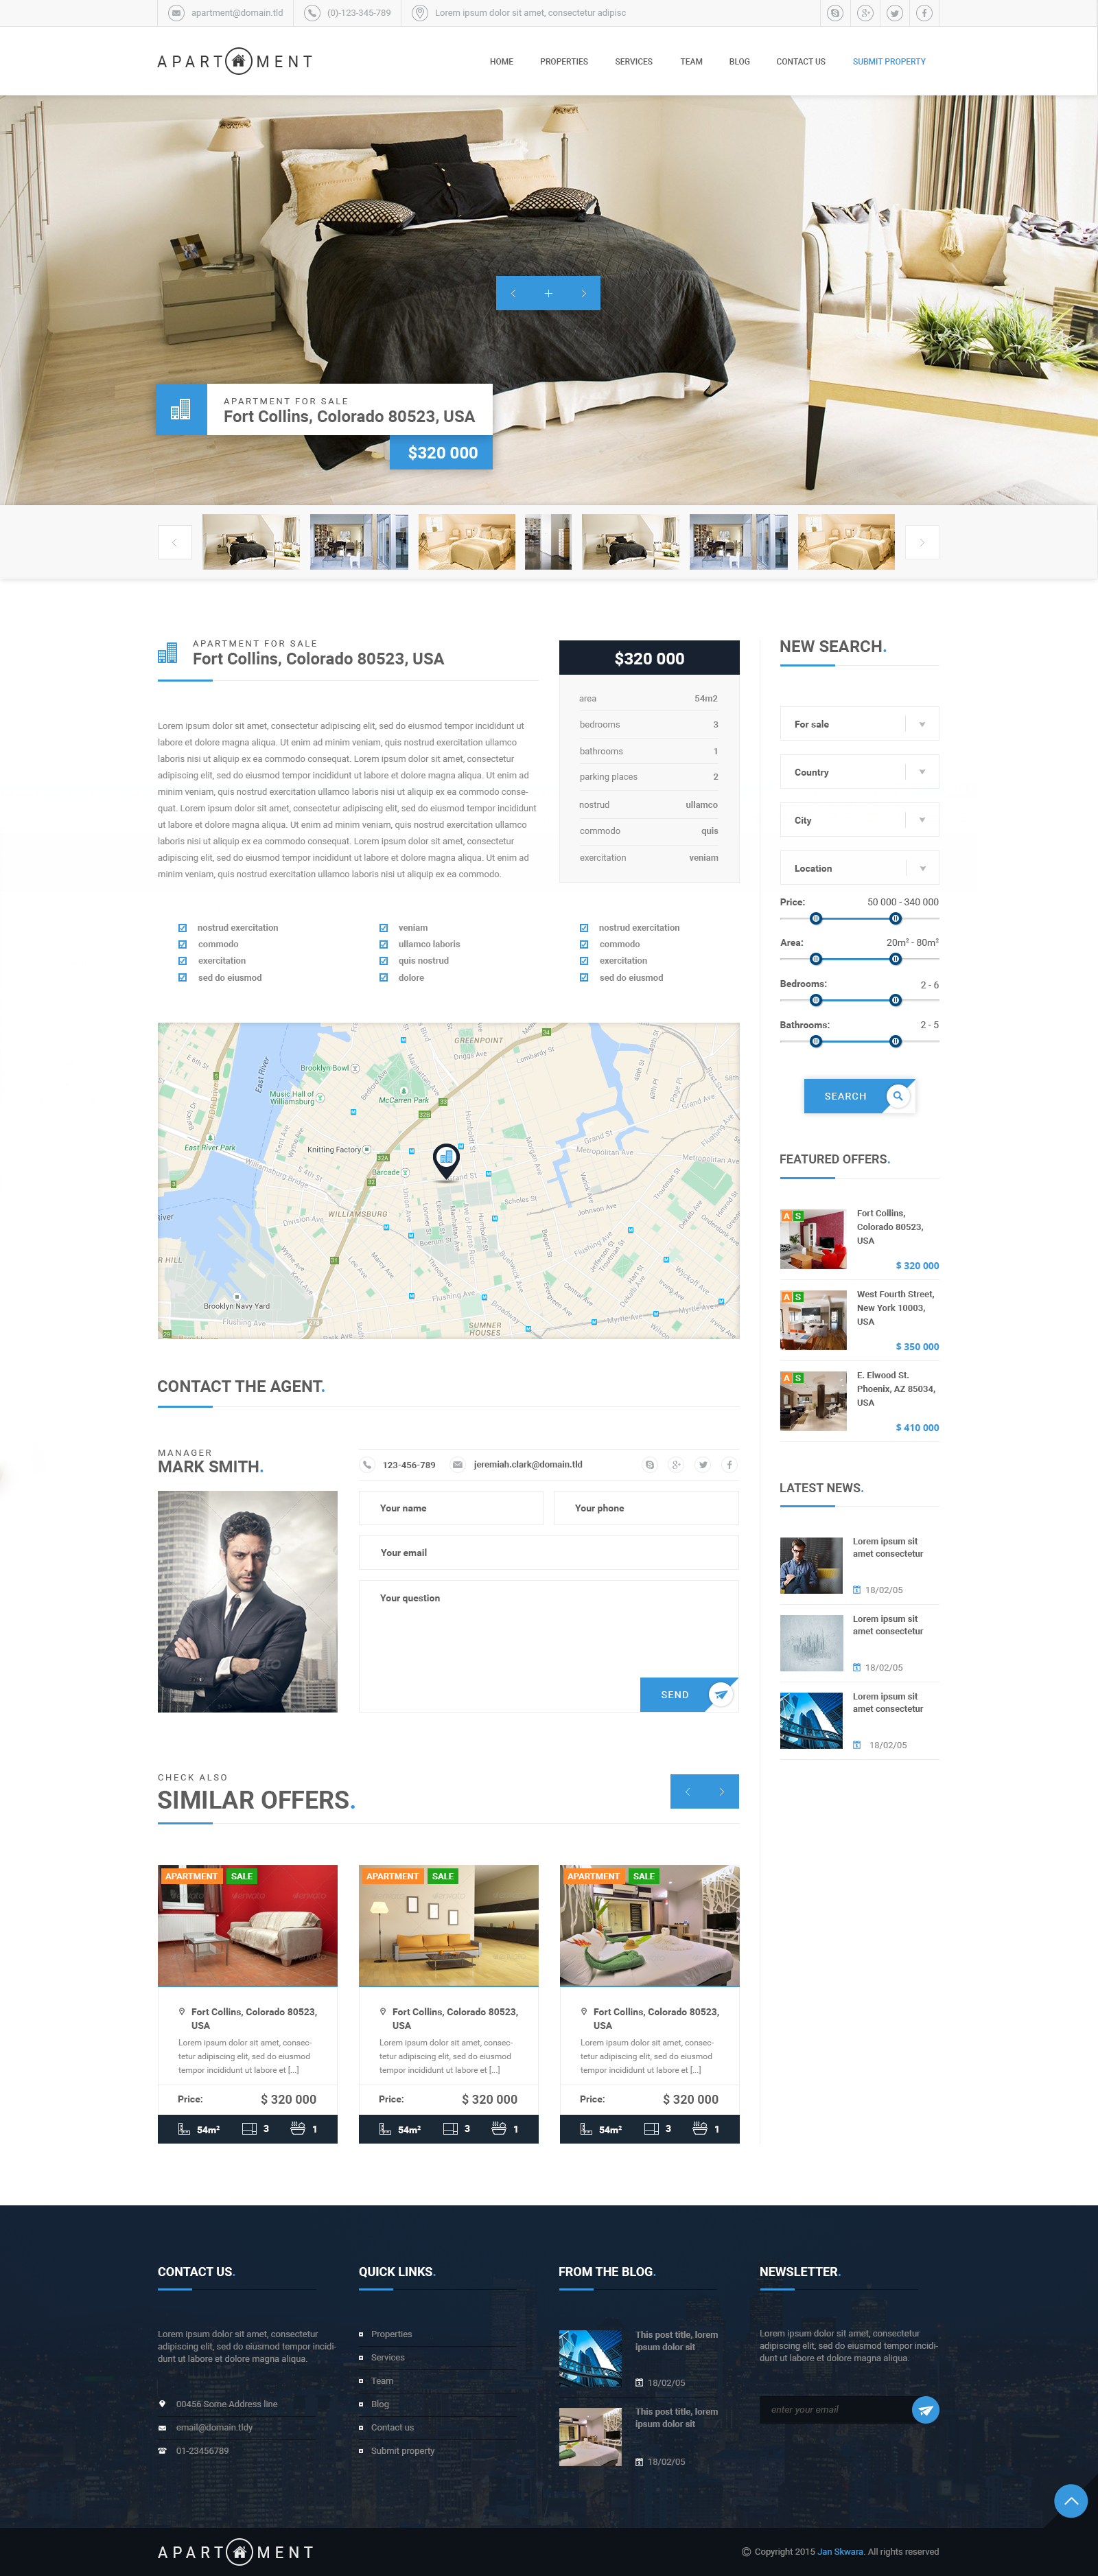 Apartment Premium Real Estate Psd Template By Johnnychaos